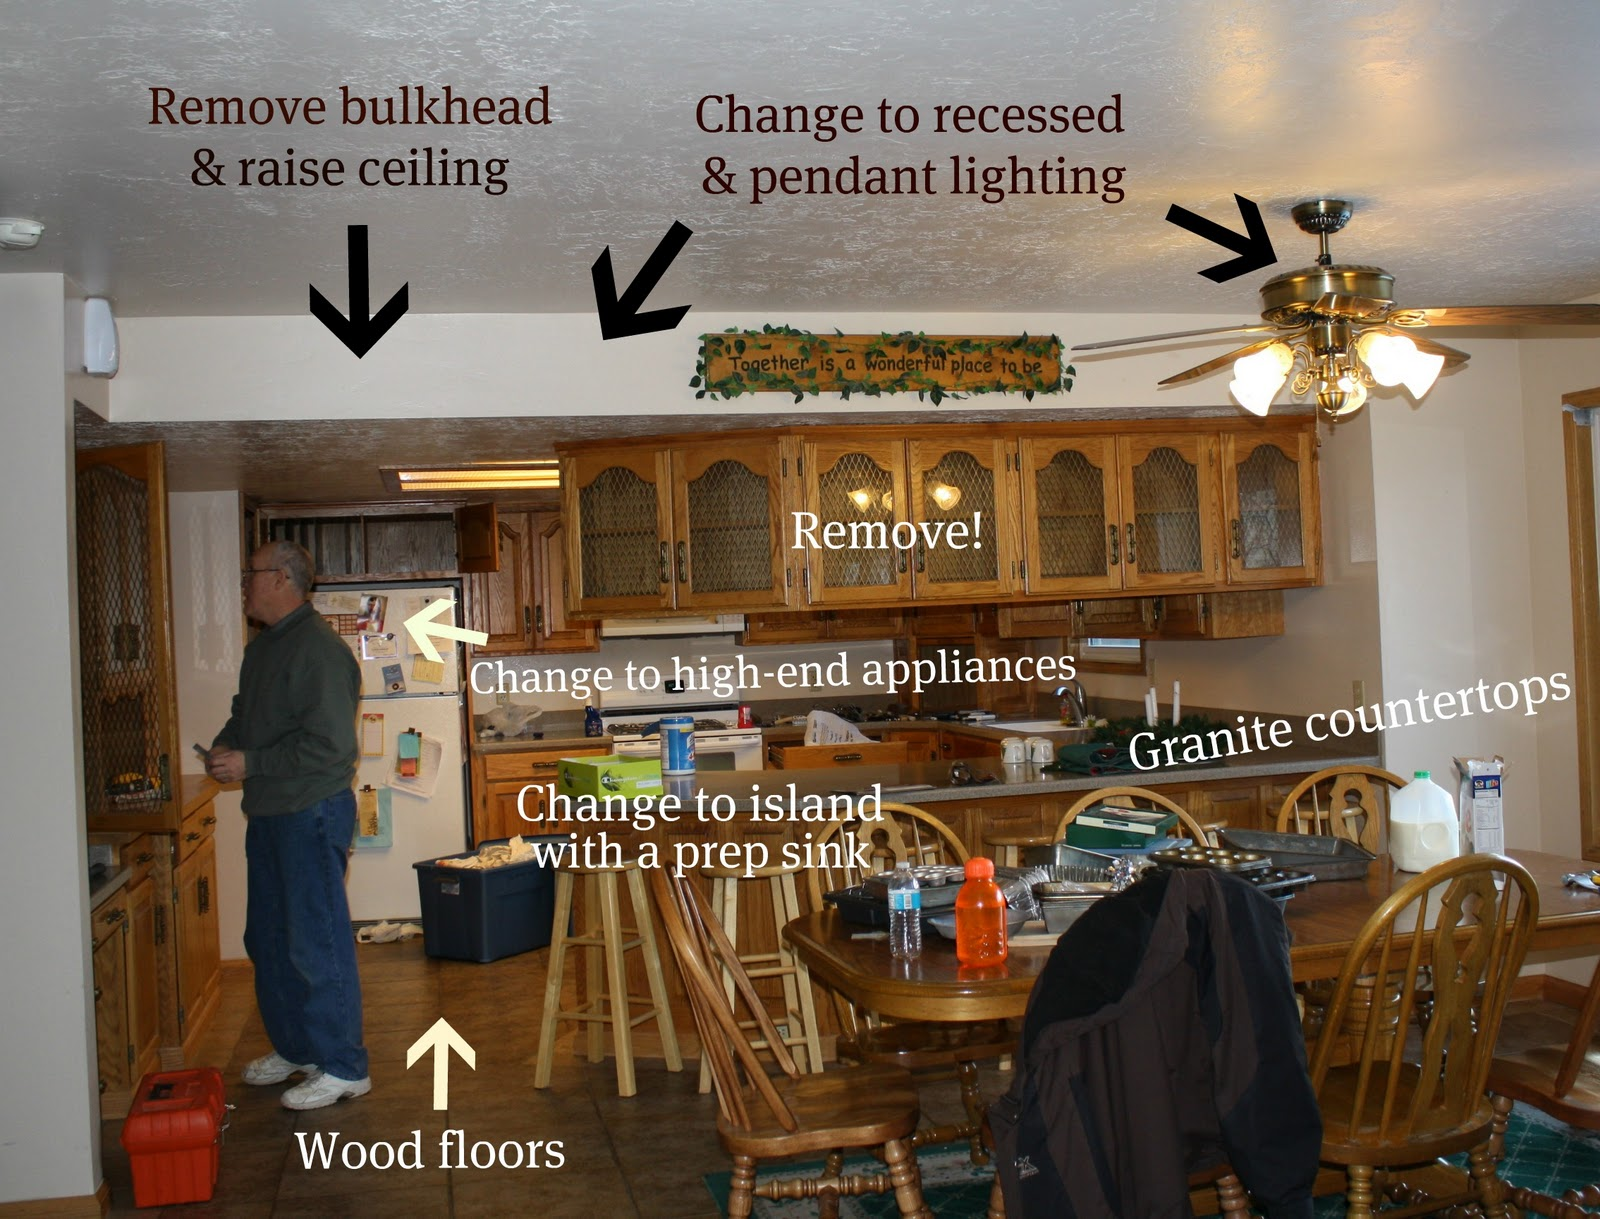 Marvelous photograph of How To Update Outdated Oak Kitchen Cabinets Good Questions 2015 Home  with #674120 color and 1600x1219 pixels